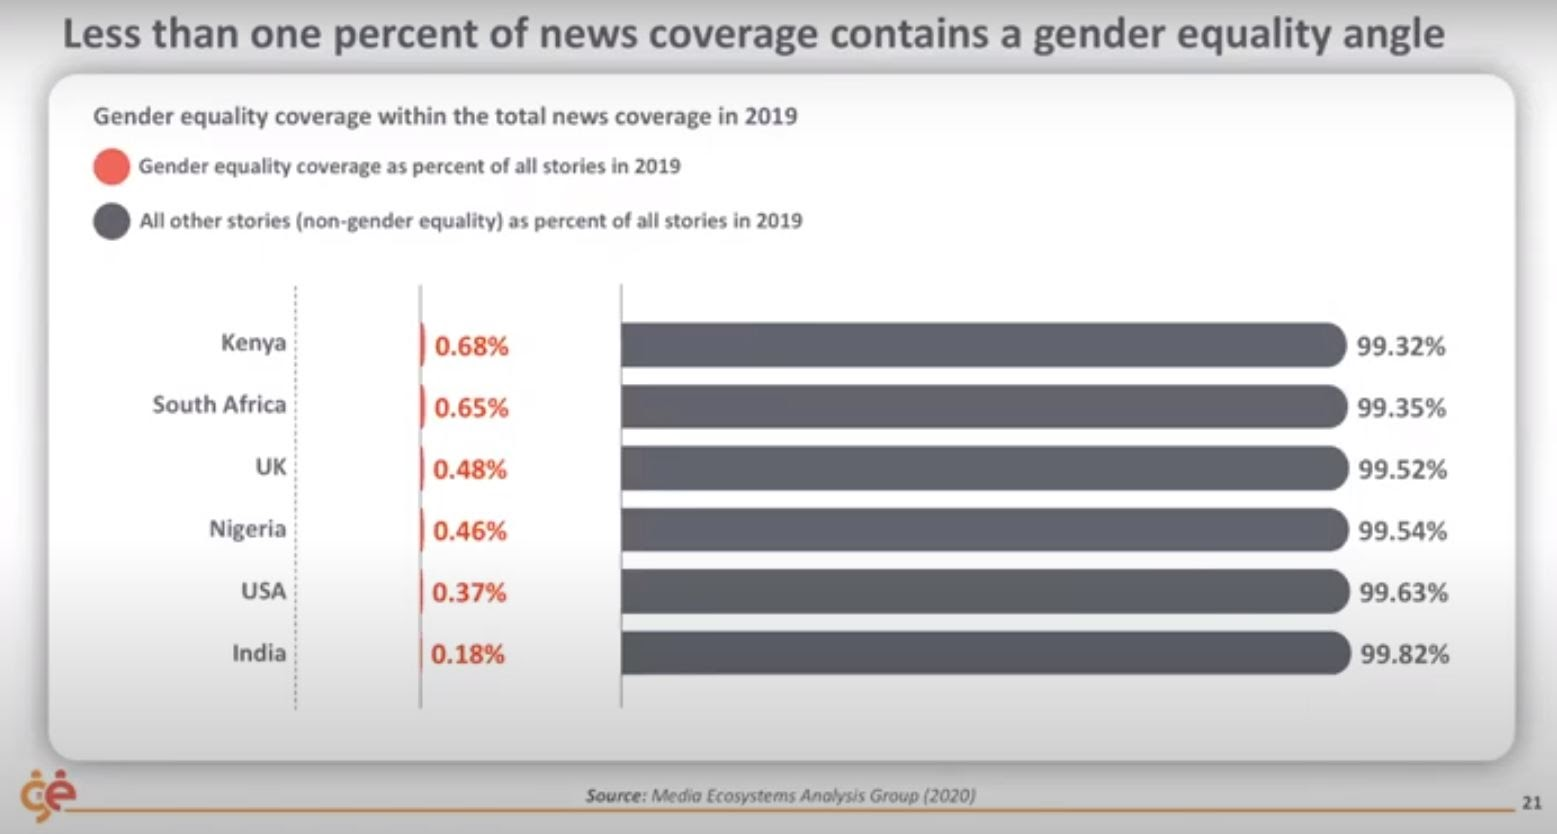 Gender equality in news coverage